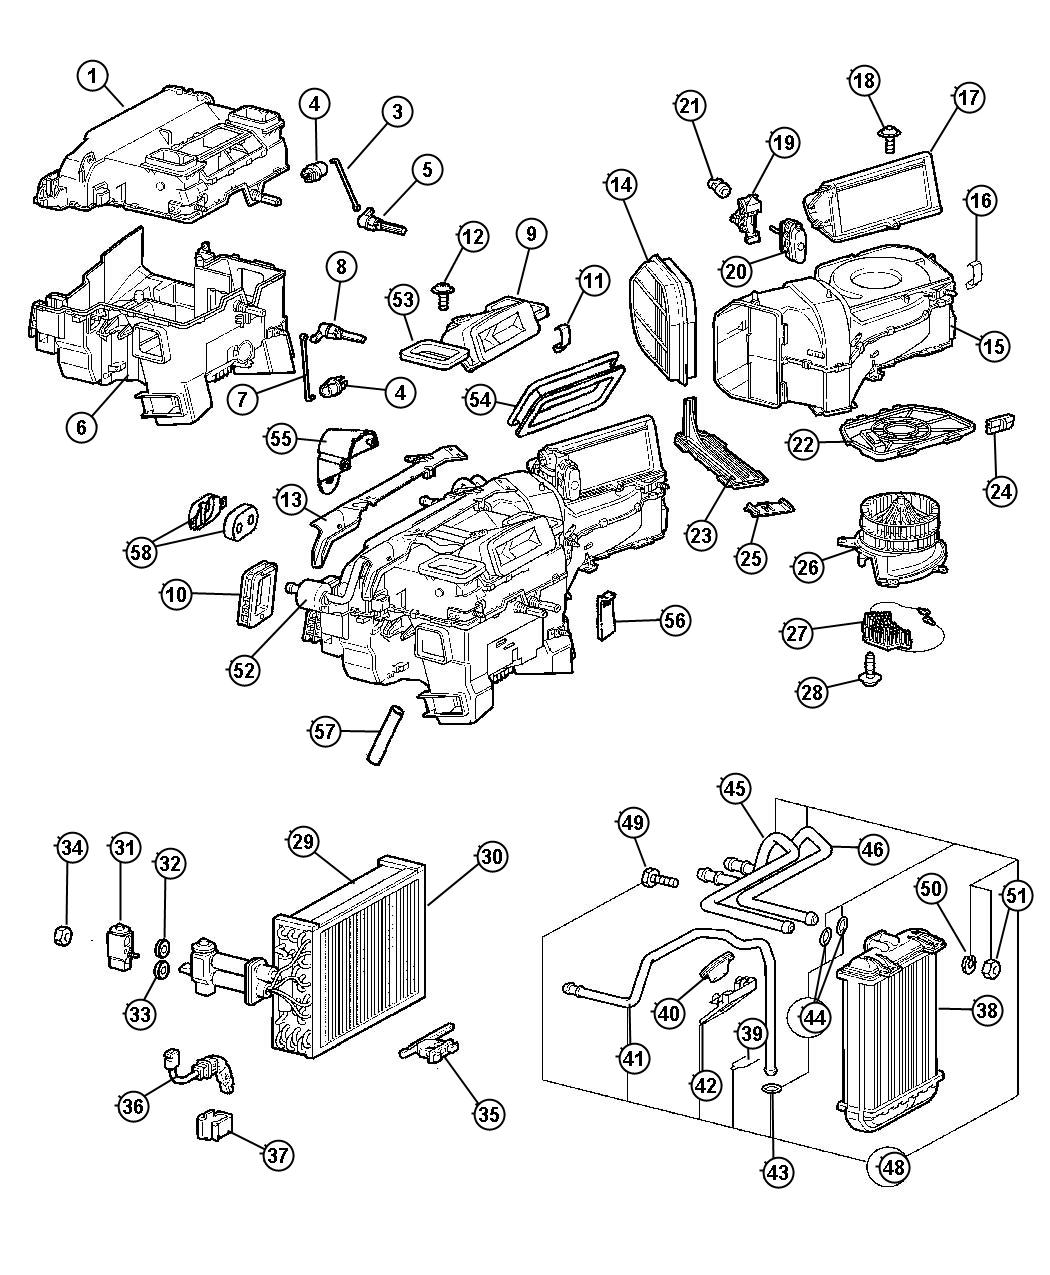 Mercedes C240 Engine Fuse Box Diagram Mercedes Auto